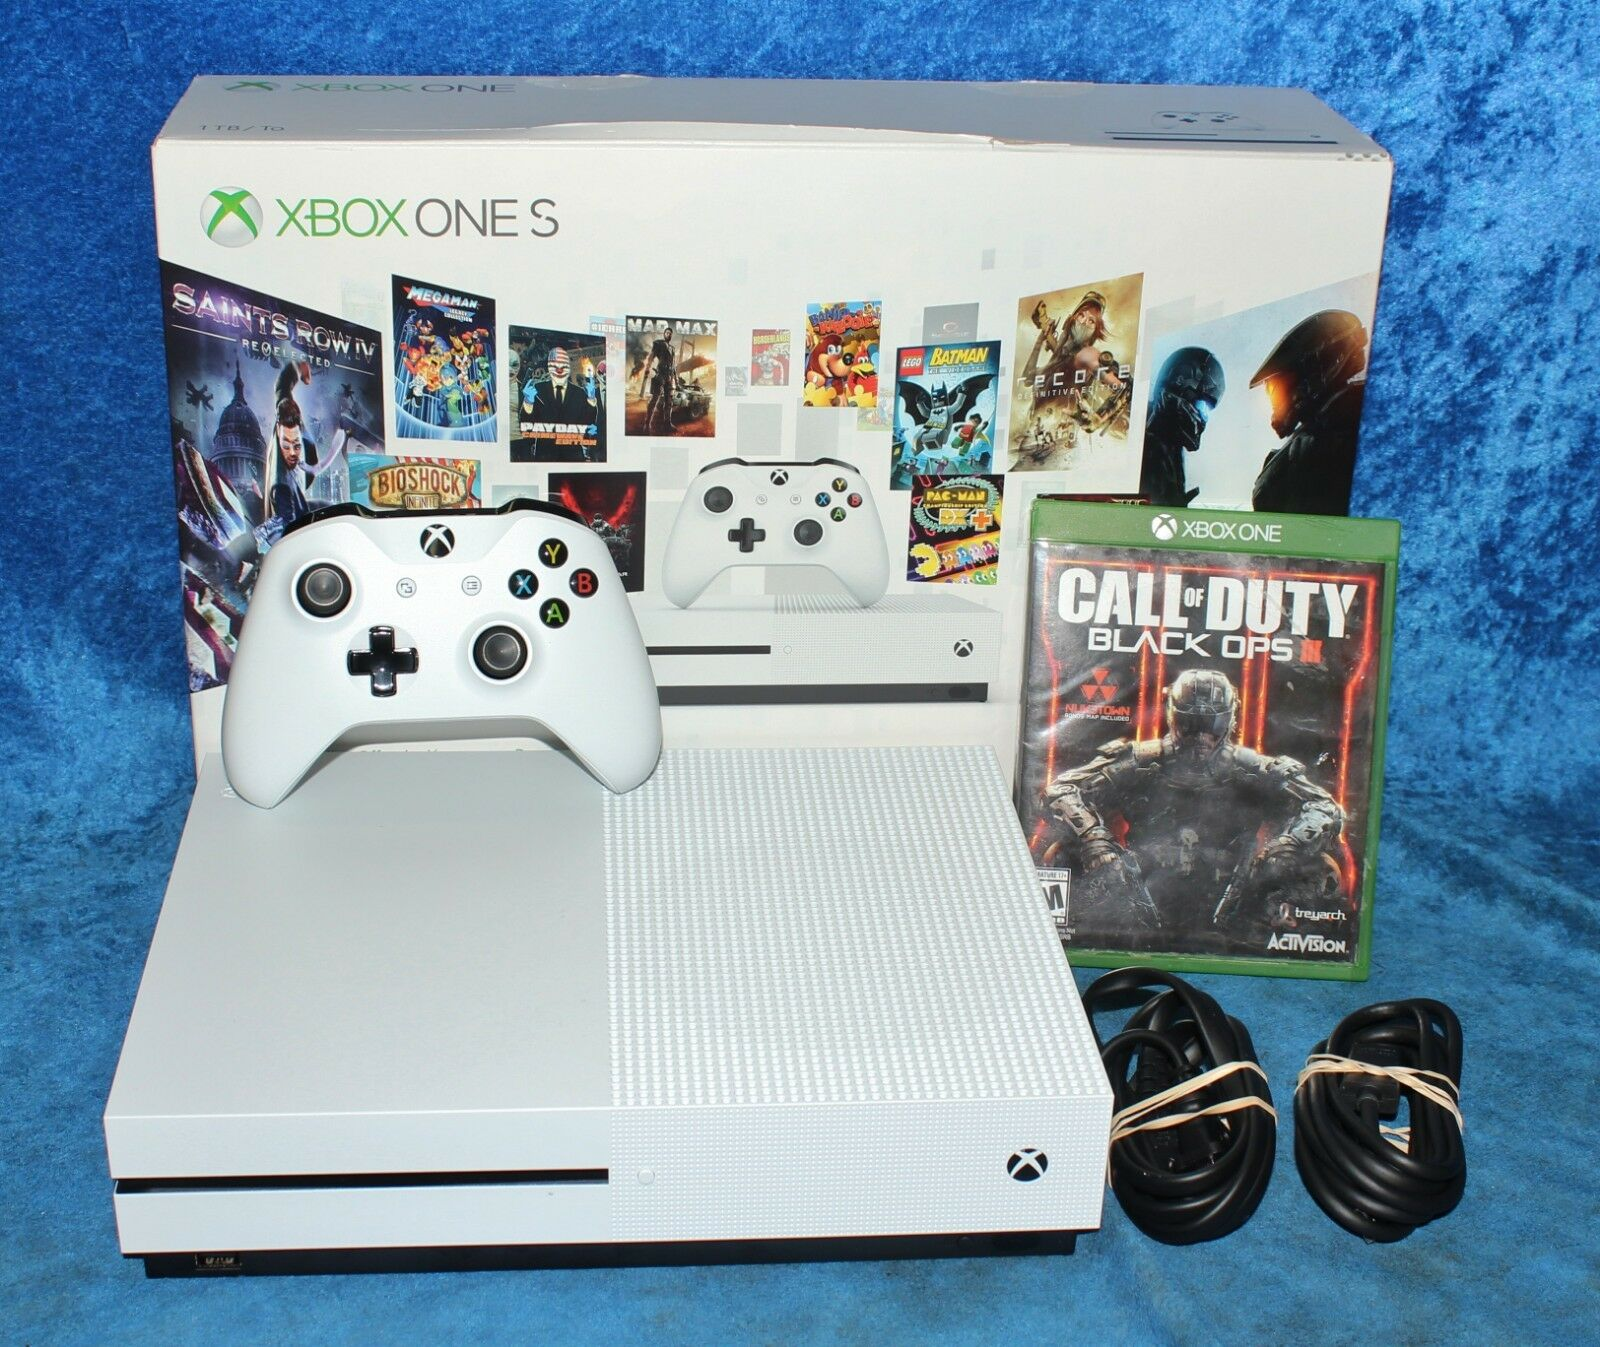 Microsoft Xbox One S 1 Tb Video Game Console White 1681 W Cod Black Sony Playstation 4 Ps4 Call Of Duty Limited Edition Non Dvd 12only Available